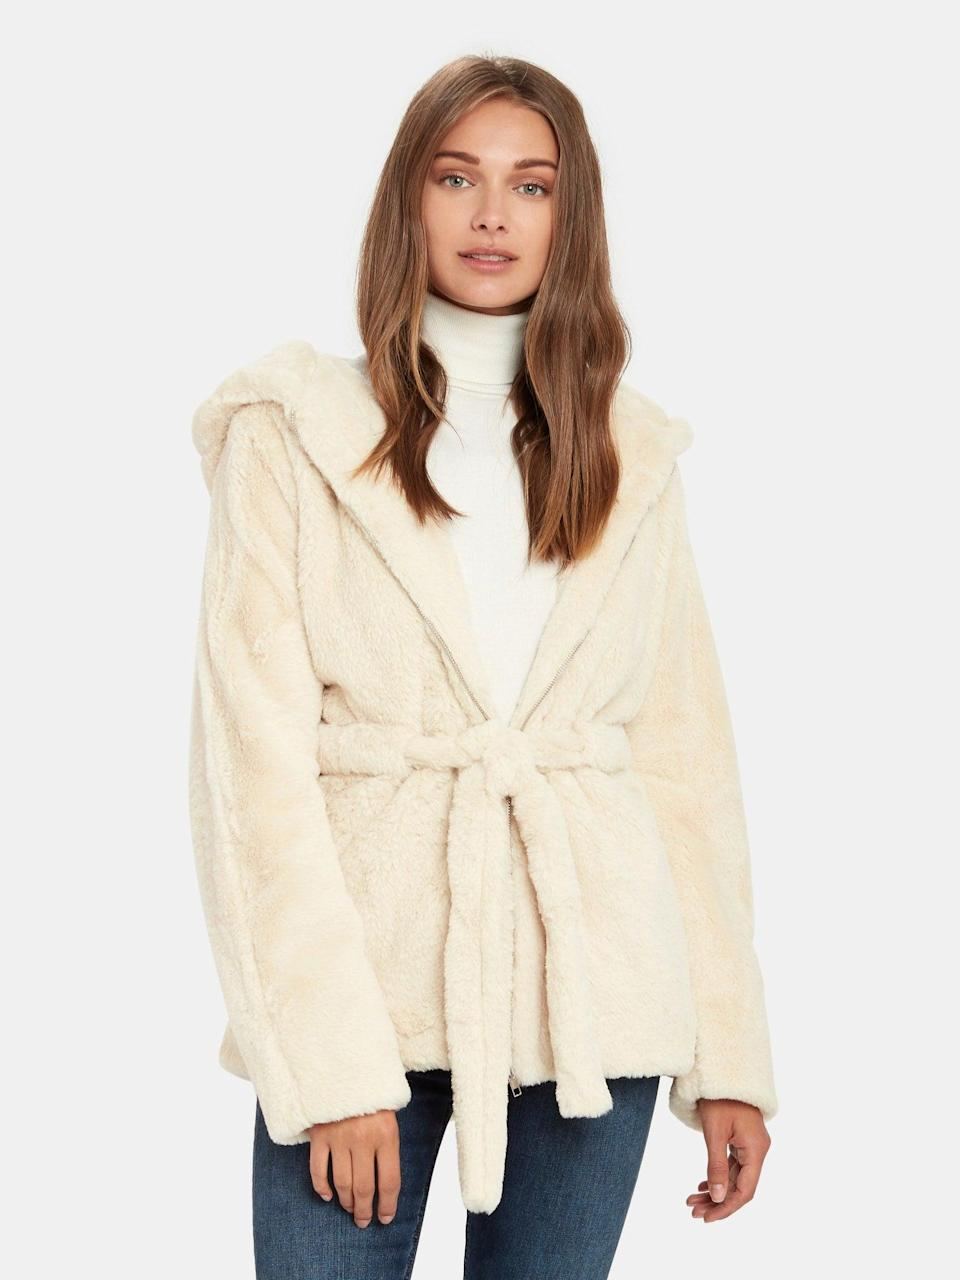 "<br><br><strong>Moon River</strong> Faux Shearling Zip Up Hooded Jacket, $, available at <a href=""https://go.skimresources.com/?id=30283X879131&url=https%3A%2F%2Fwww.verishop.com%2Fmoon-river%2Fcoats-jackets-blazers%2Ffaux-shearling-zip-up-hooded-jacket%2Fp1837447807011"" rel=""nofollow noopener"" target=""_blank"" data-ylk=""slk:Verishop"" class=""link rapid-noclick-resp"">Verishop</a>"